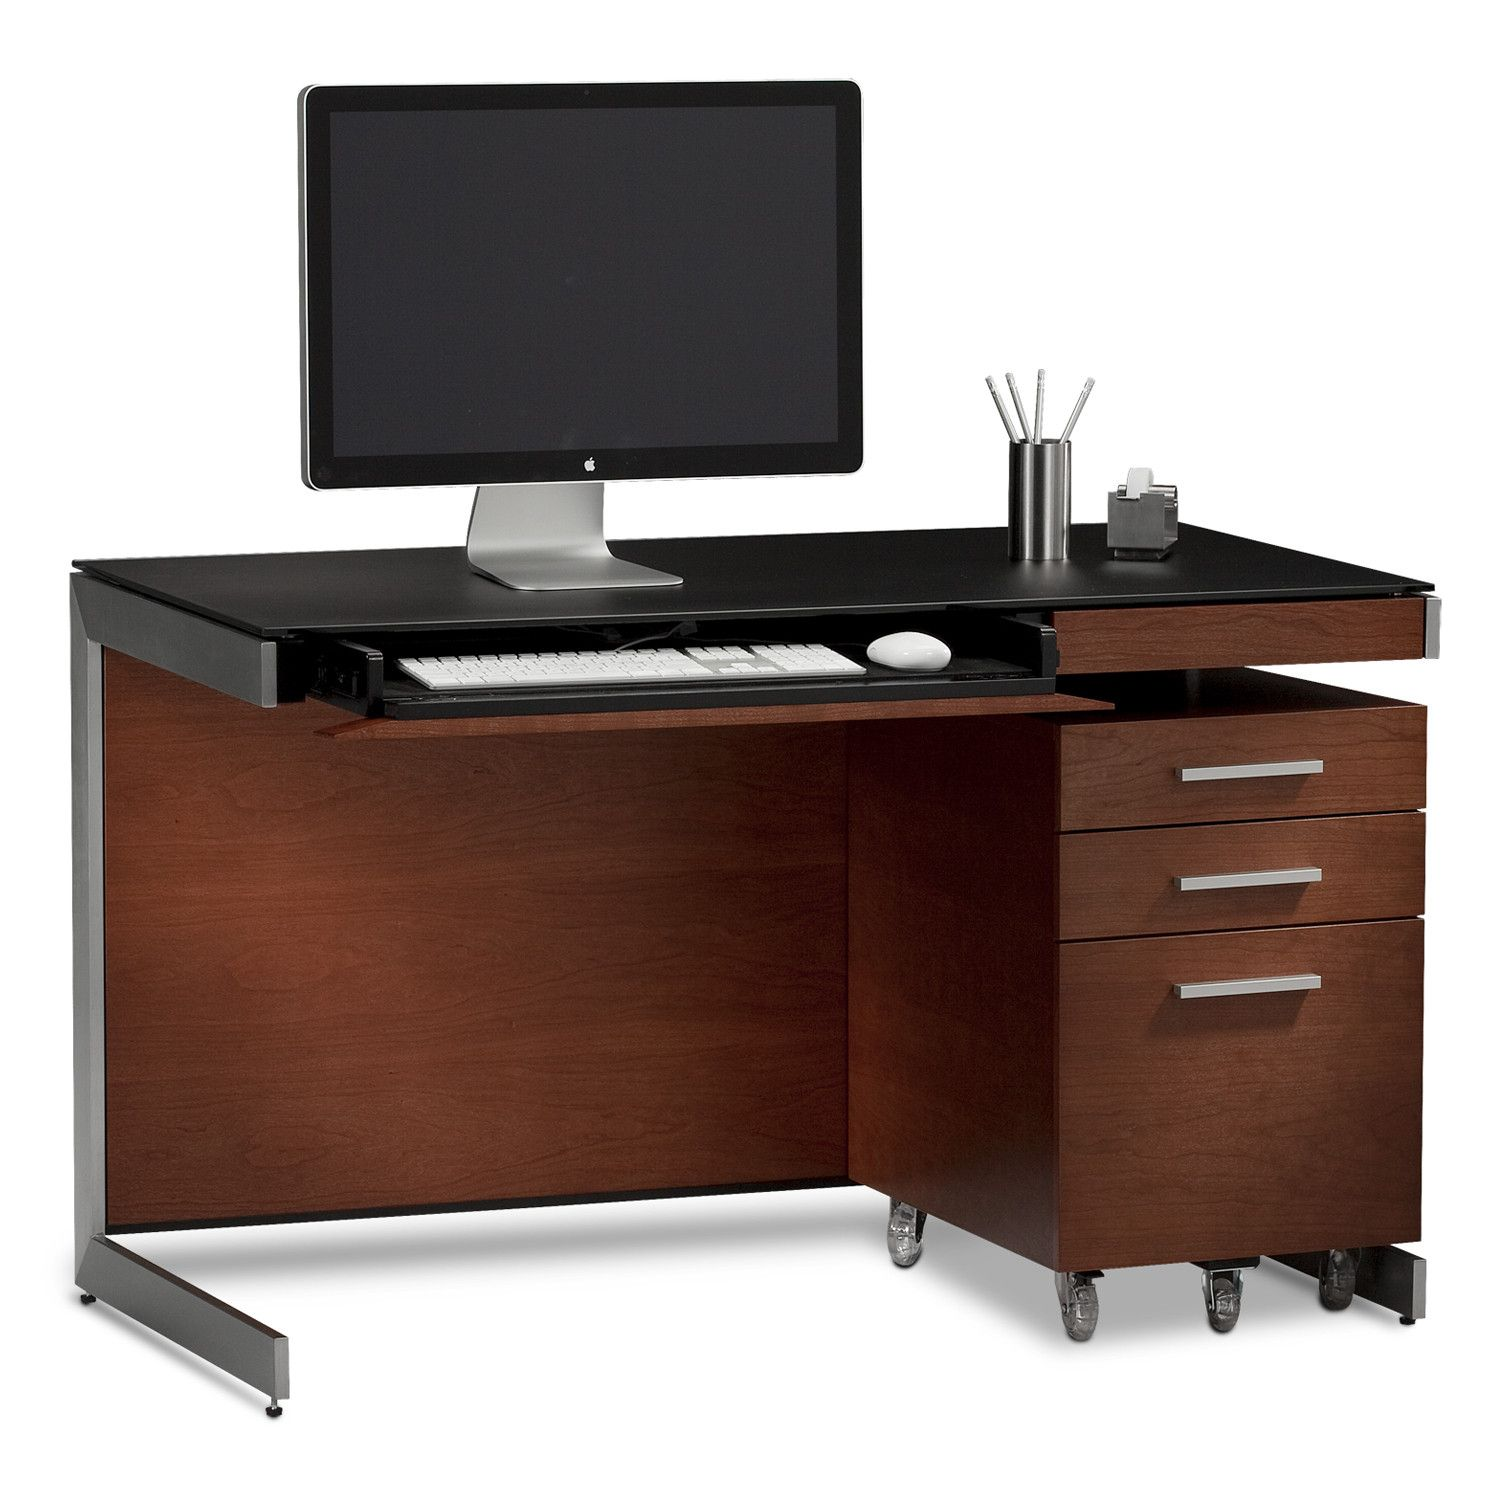 Sequel Compact Desk Without Back Panel Small Computer Desk Computer Desk Design Modern Executive Desk